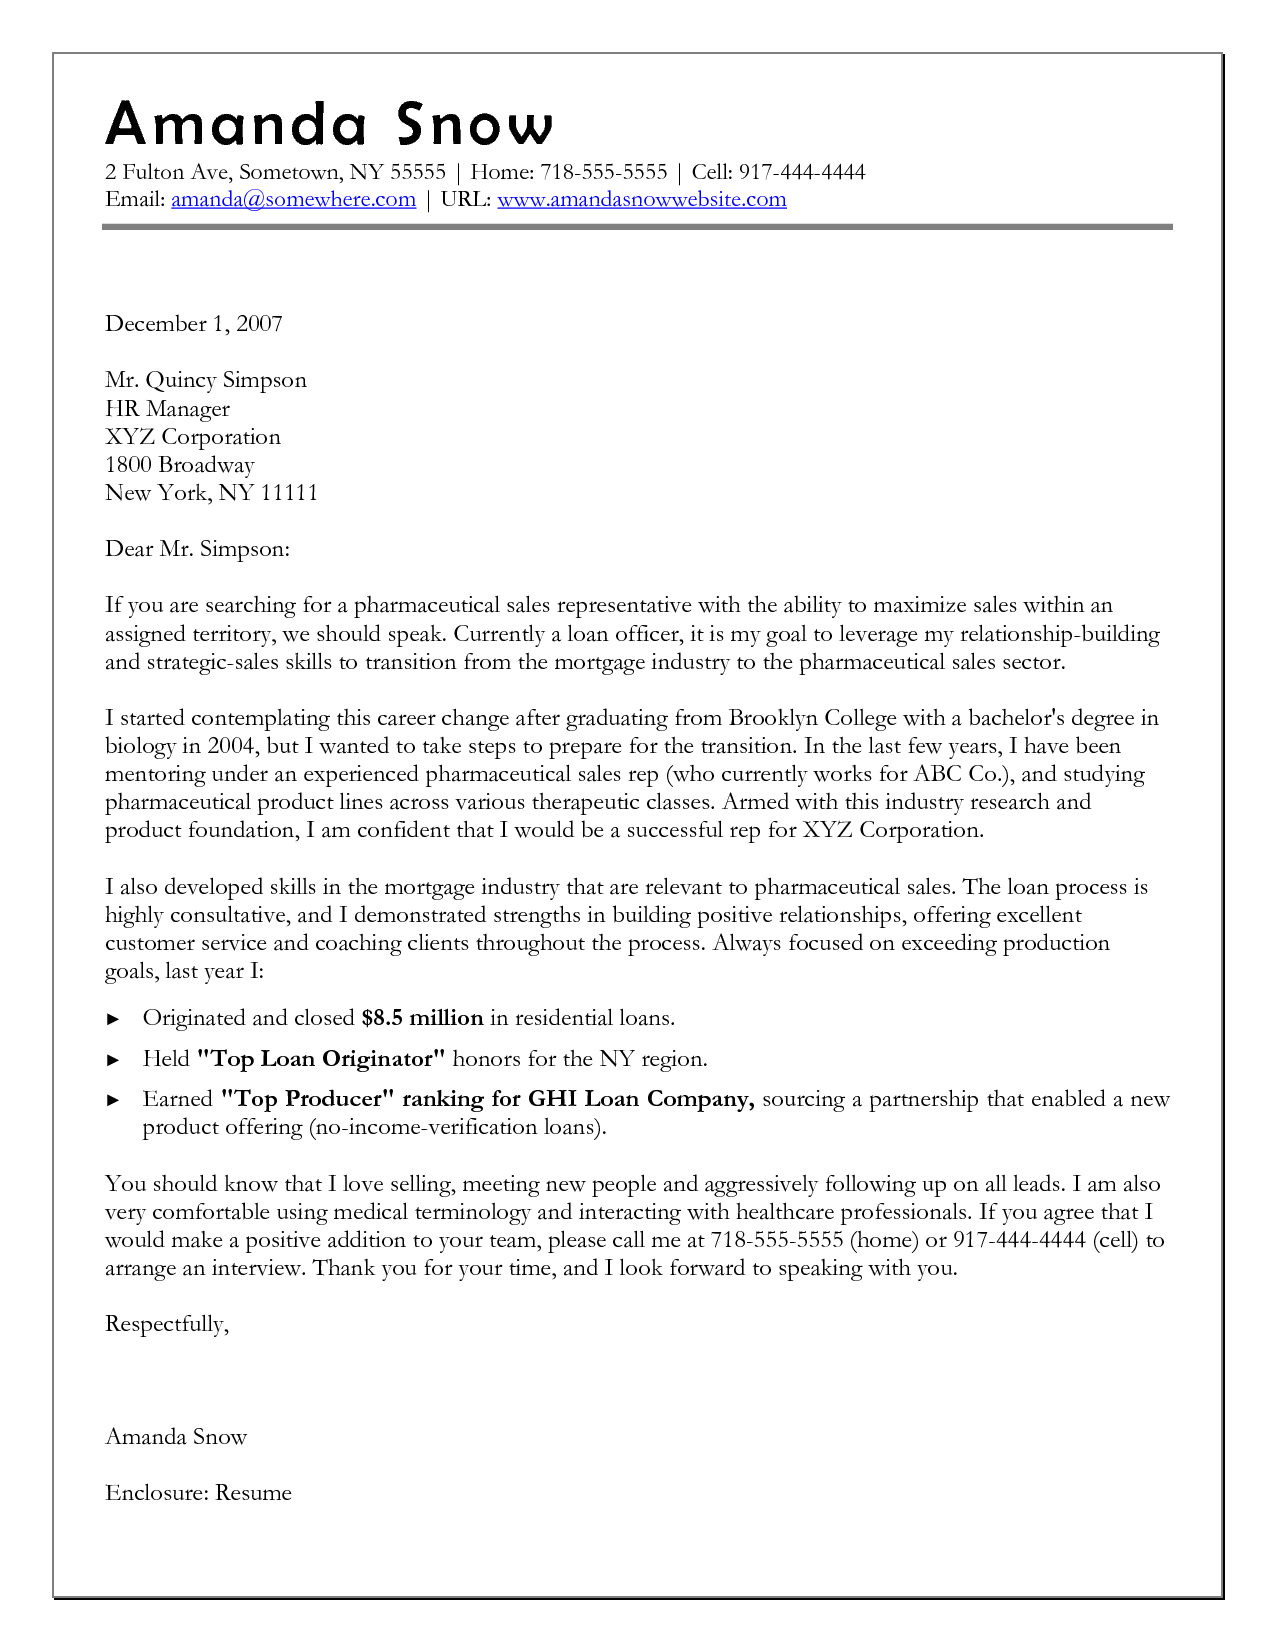 Cover Letter Template When Changing Careers Cover letter